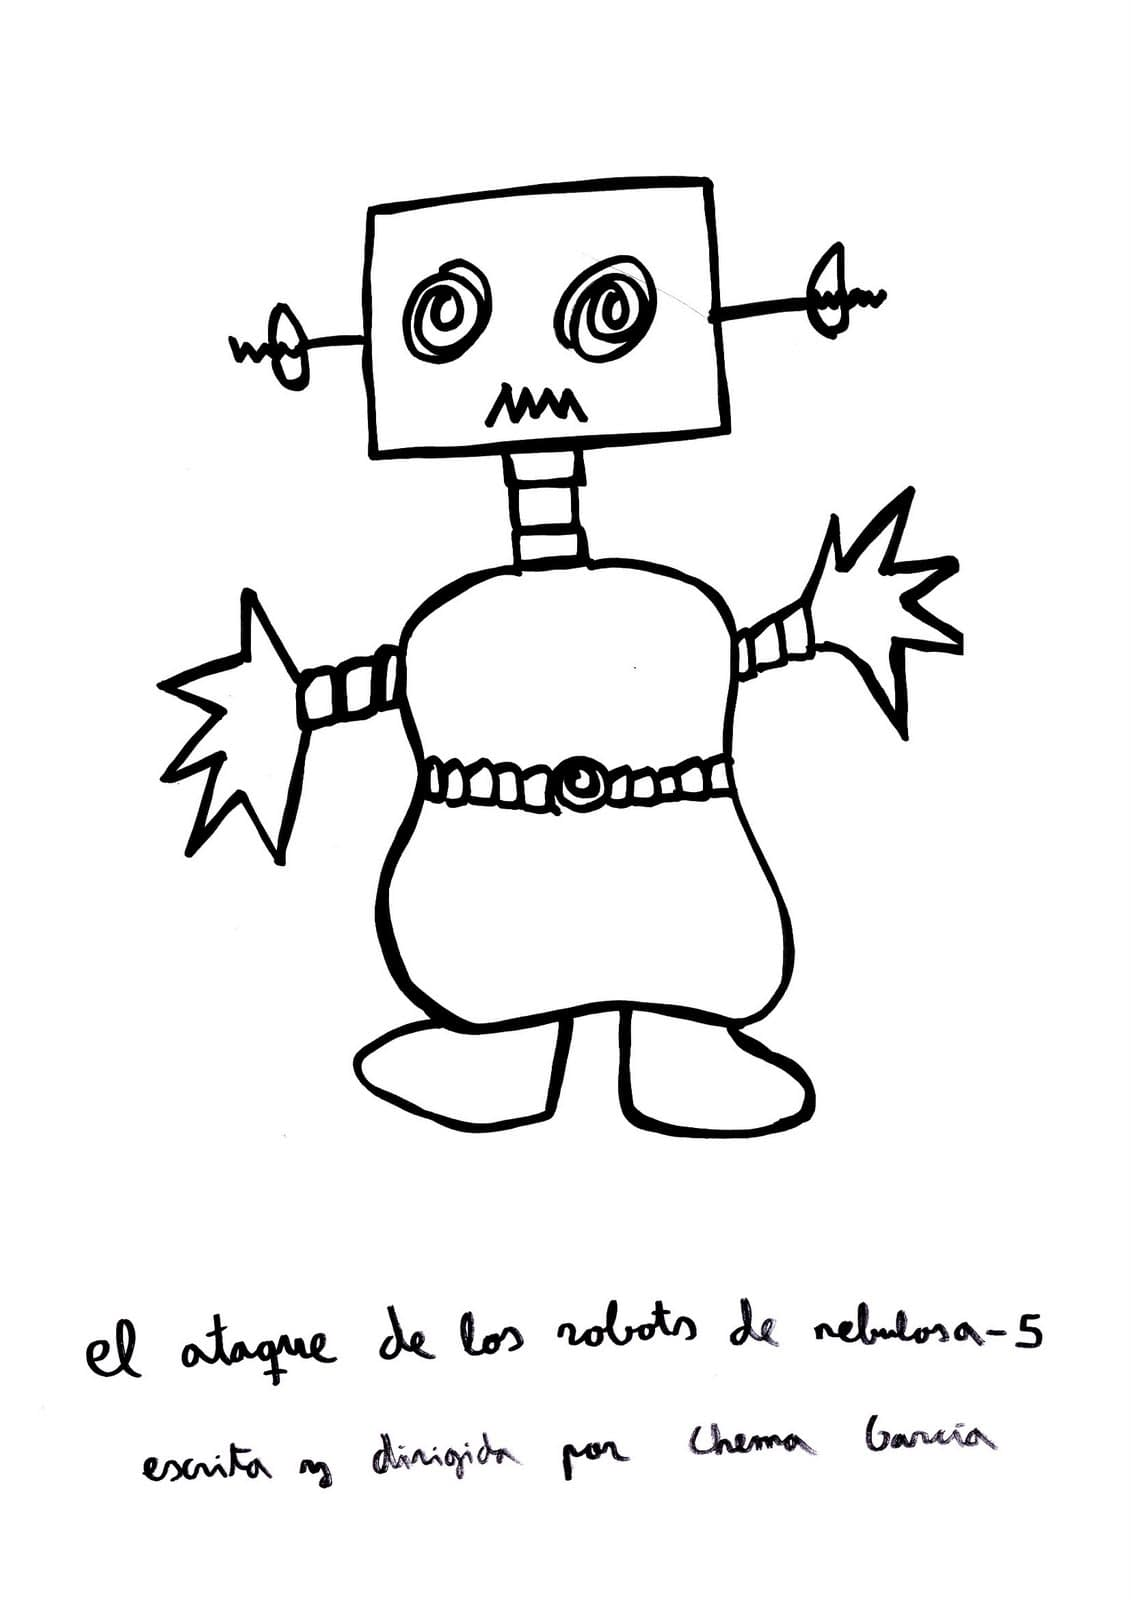 The attack of the Robots from Nebula 5